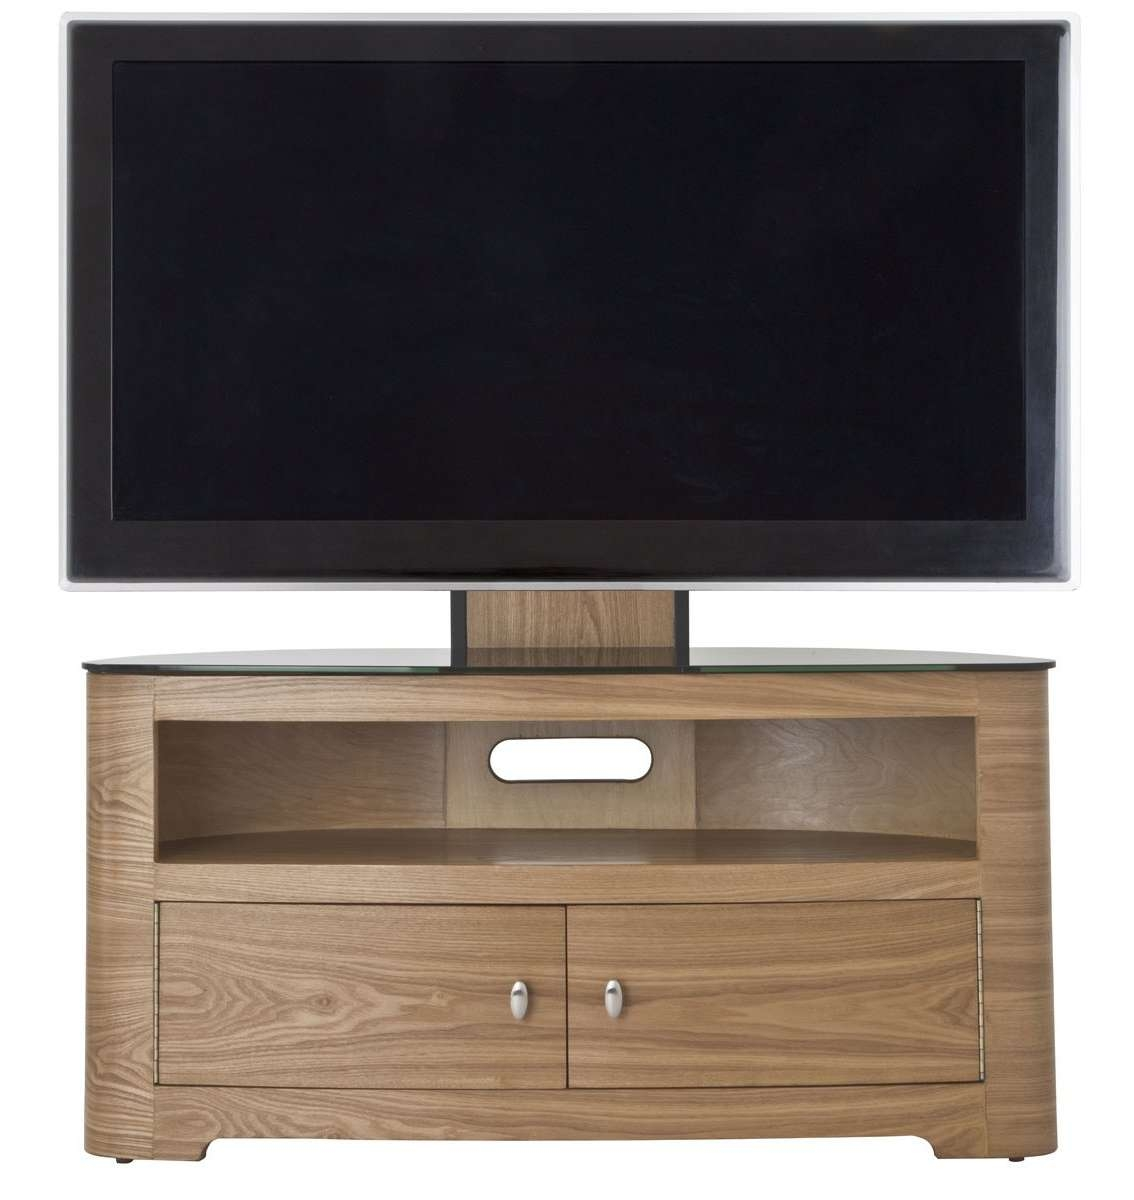 Brown Varnished Maple Wood Tv Stand With Mount Using Double Swing With Maple Wood Tv Stands (View 1 of 15)